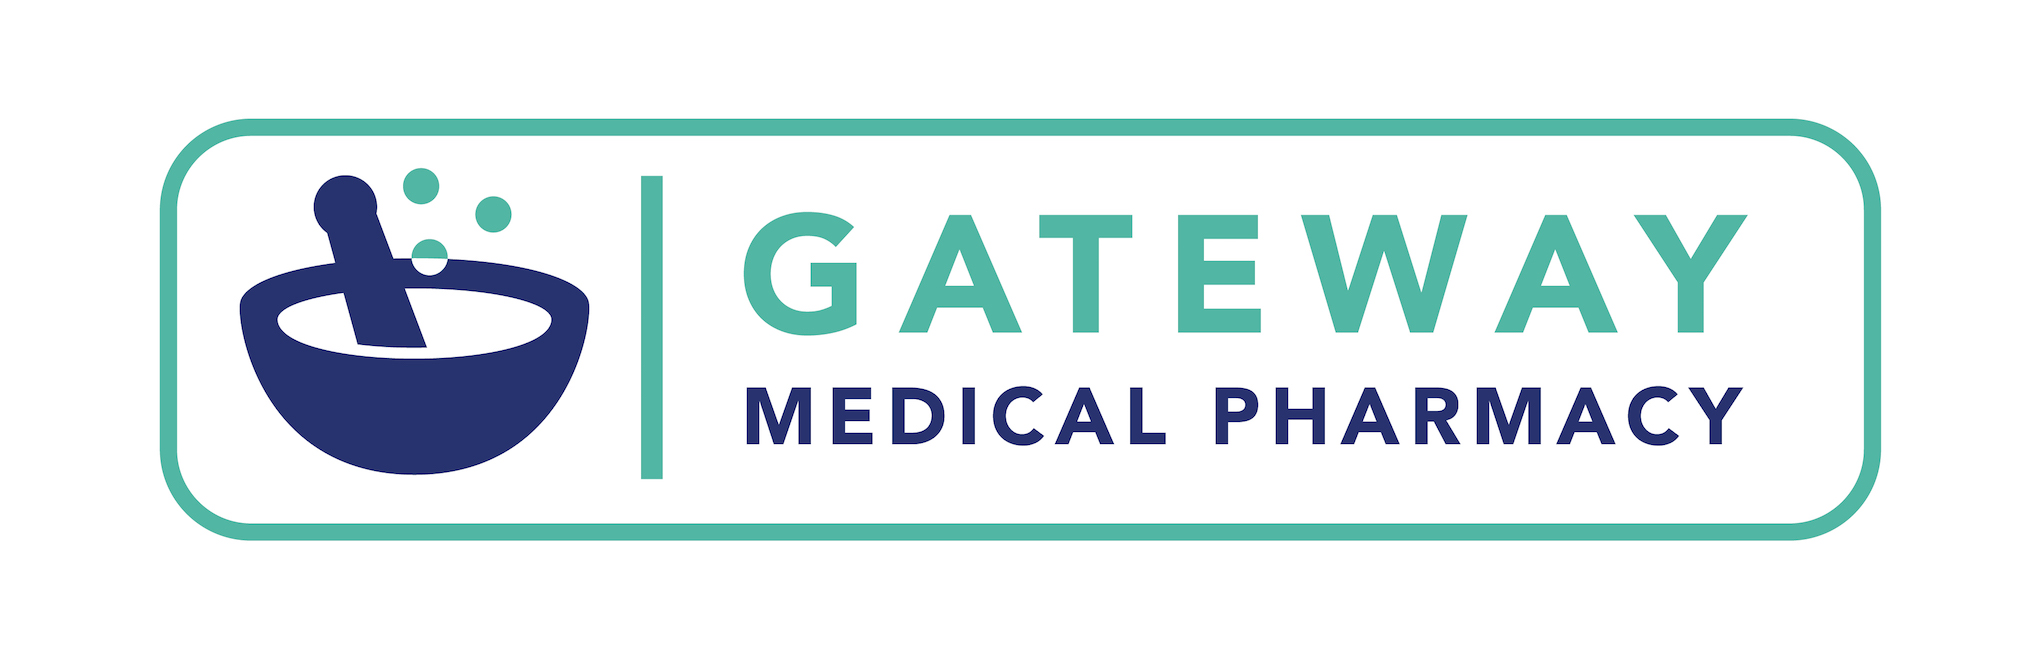 Gateway Medical Pharmacy